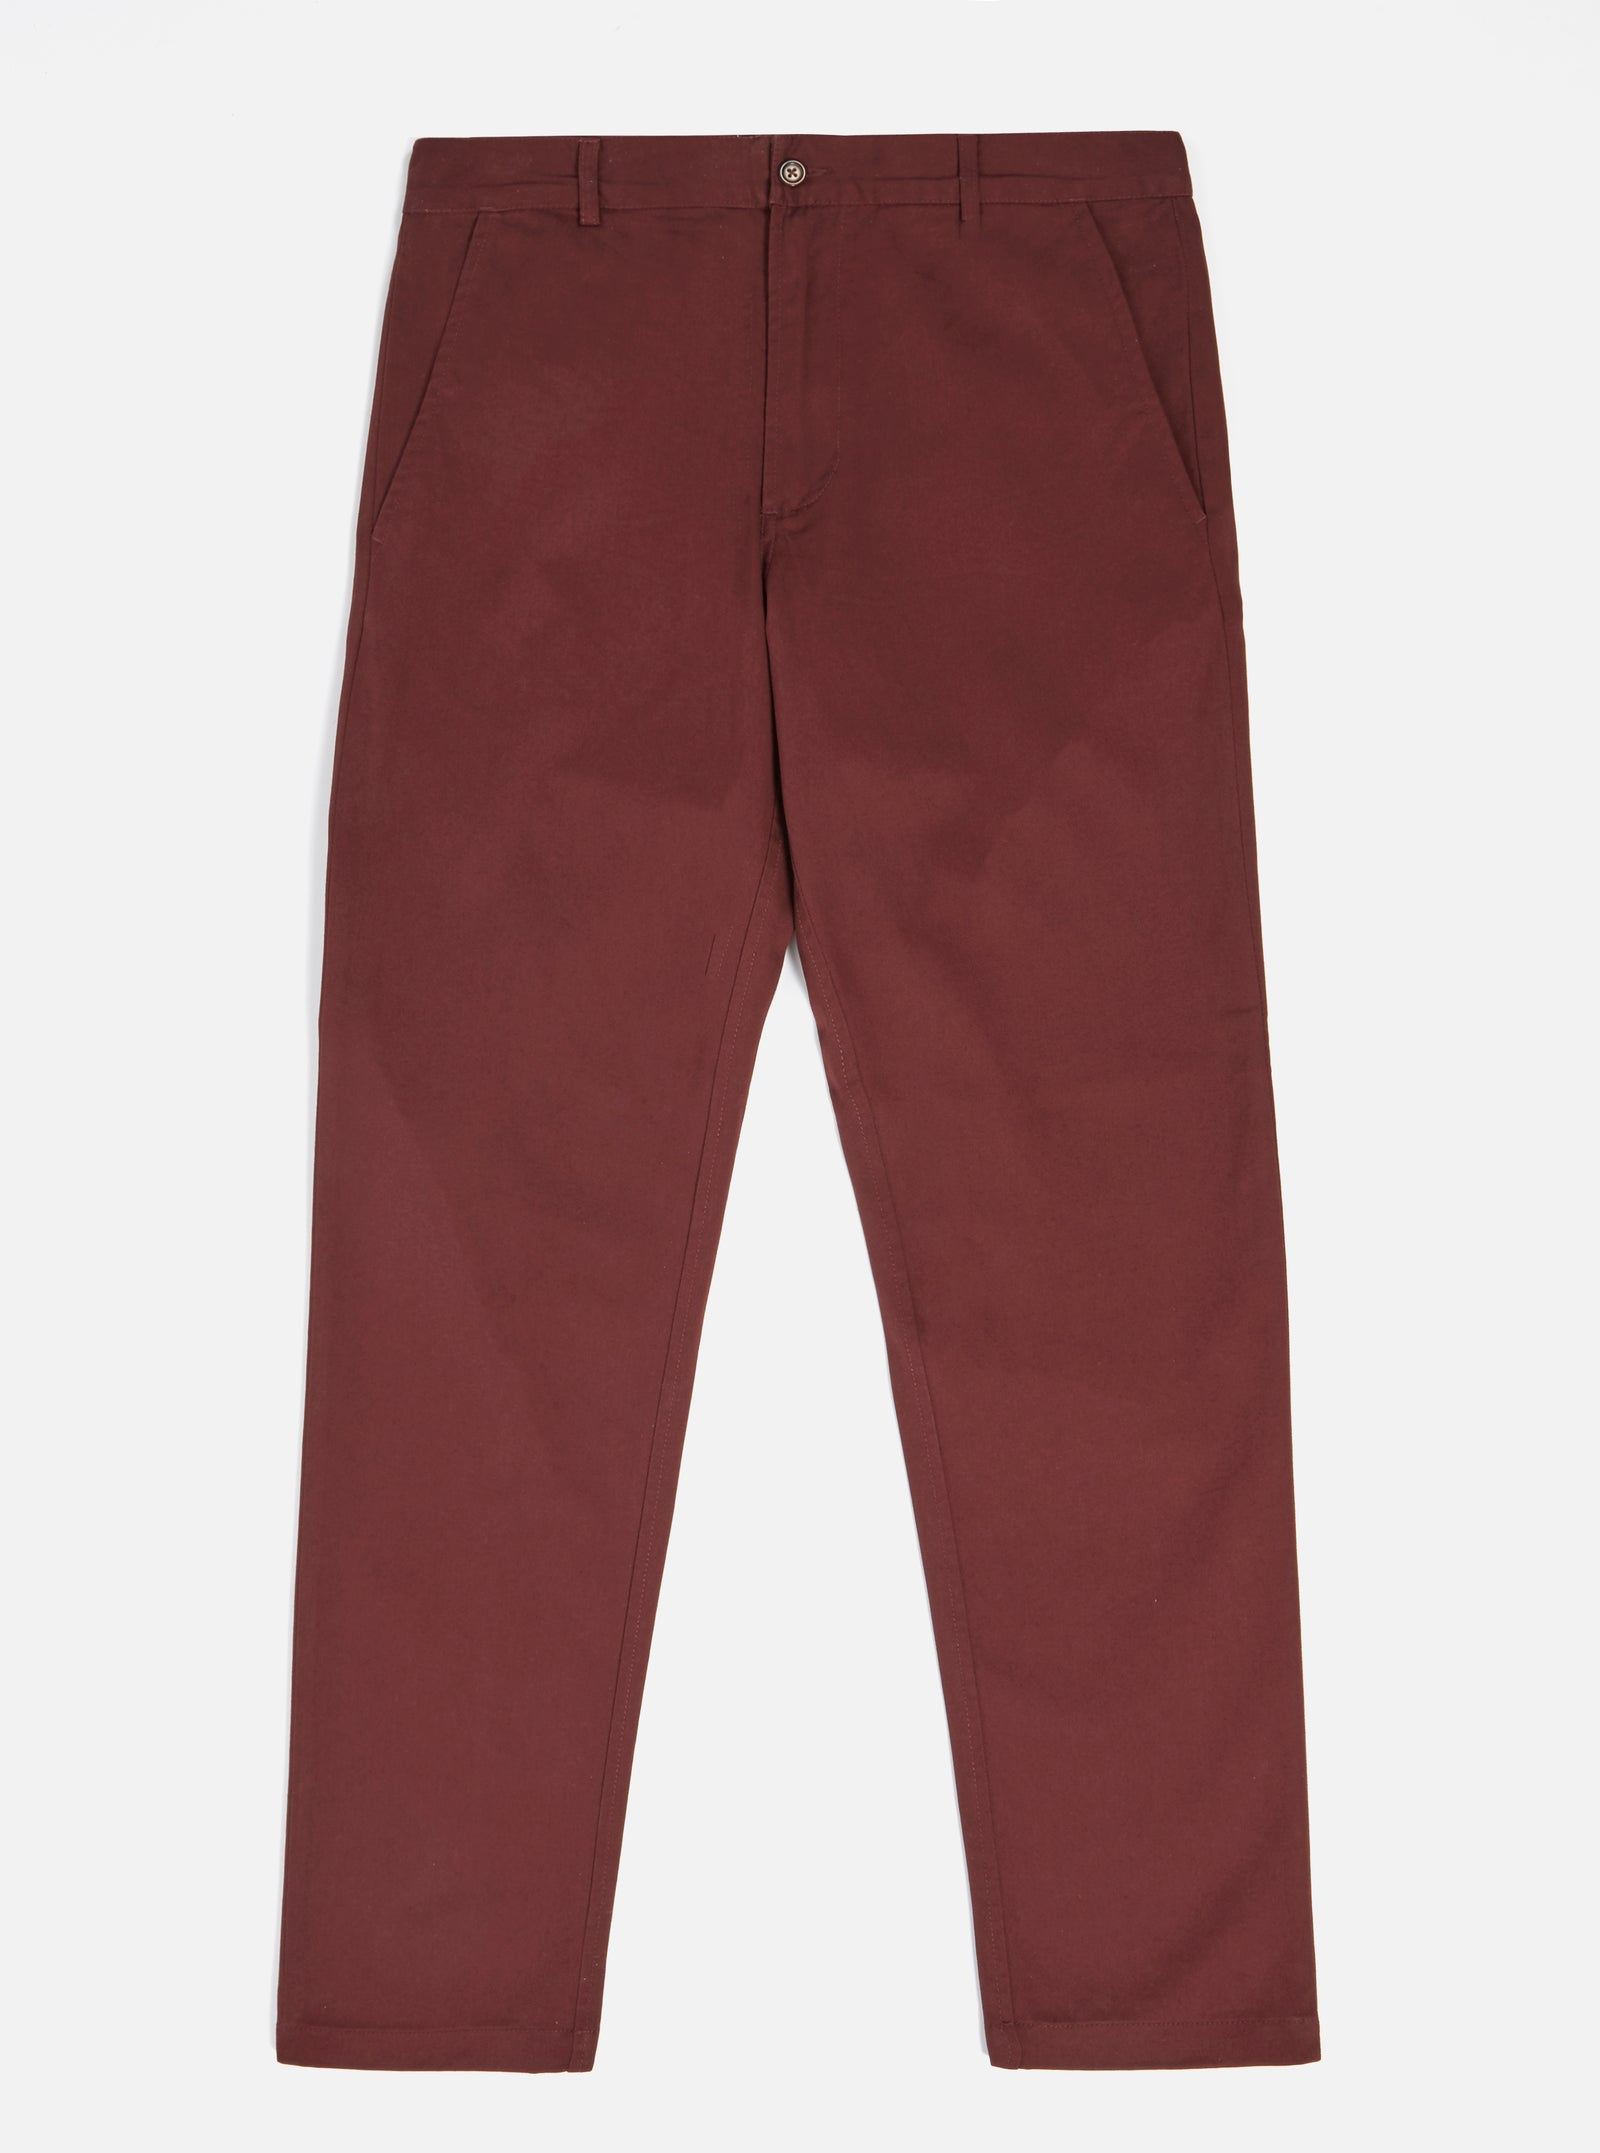 Universal Works Aston Pant in Raisin Twill